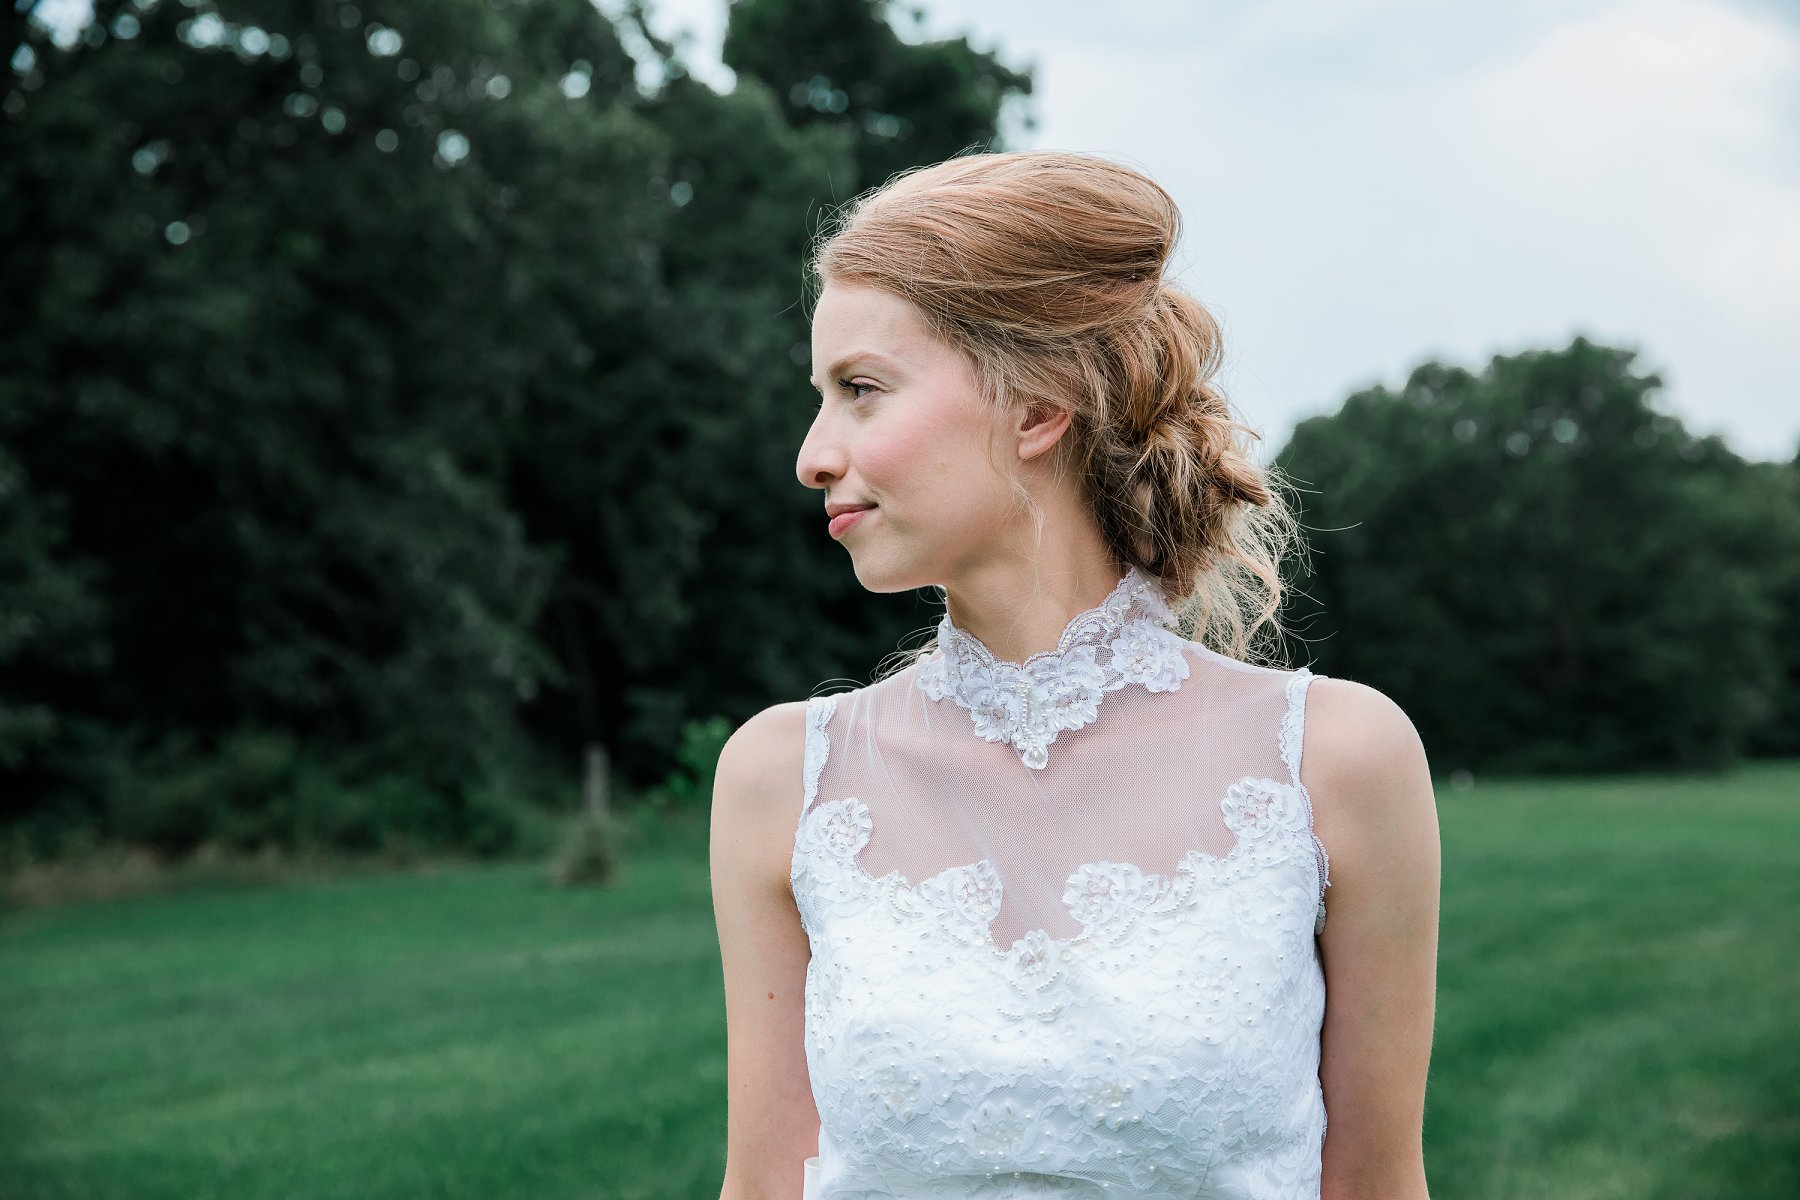 Outdoor Summer Wedding Photography in Kansas City by Merry Ohler, wedding photographer kansas city - 18